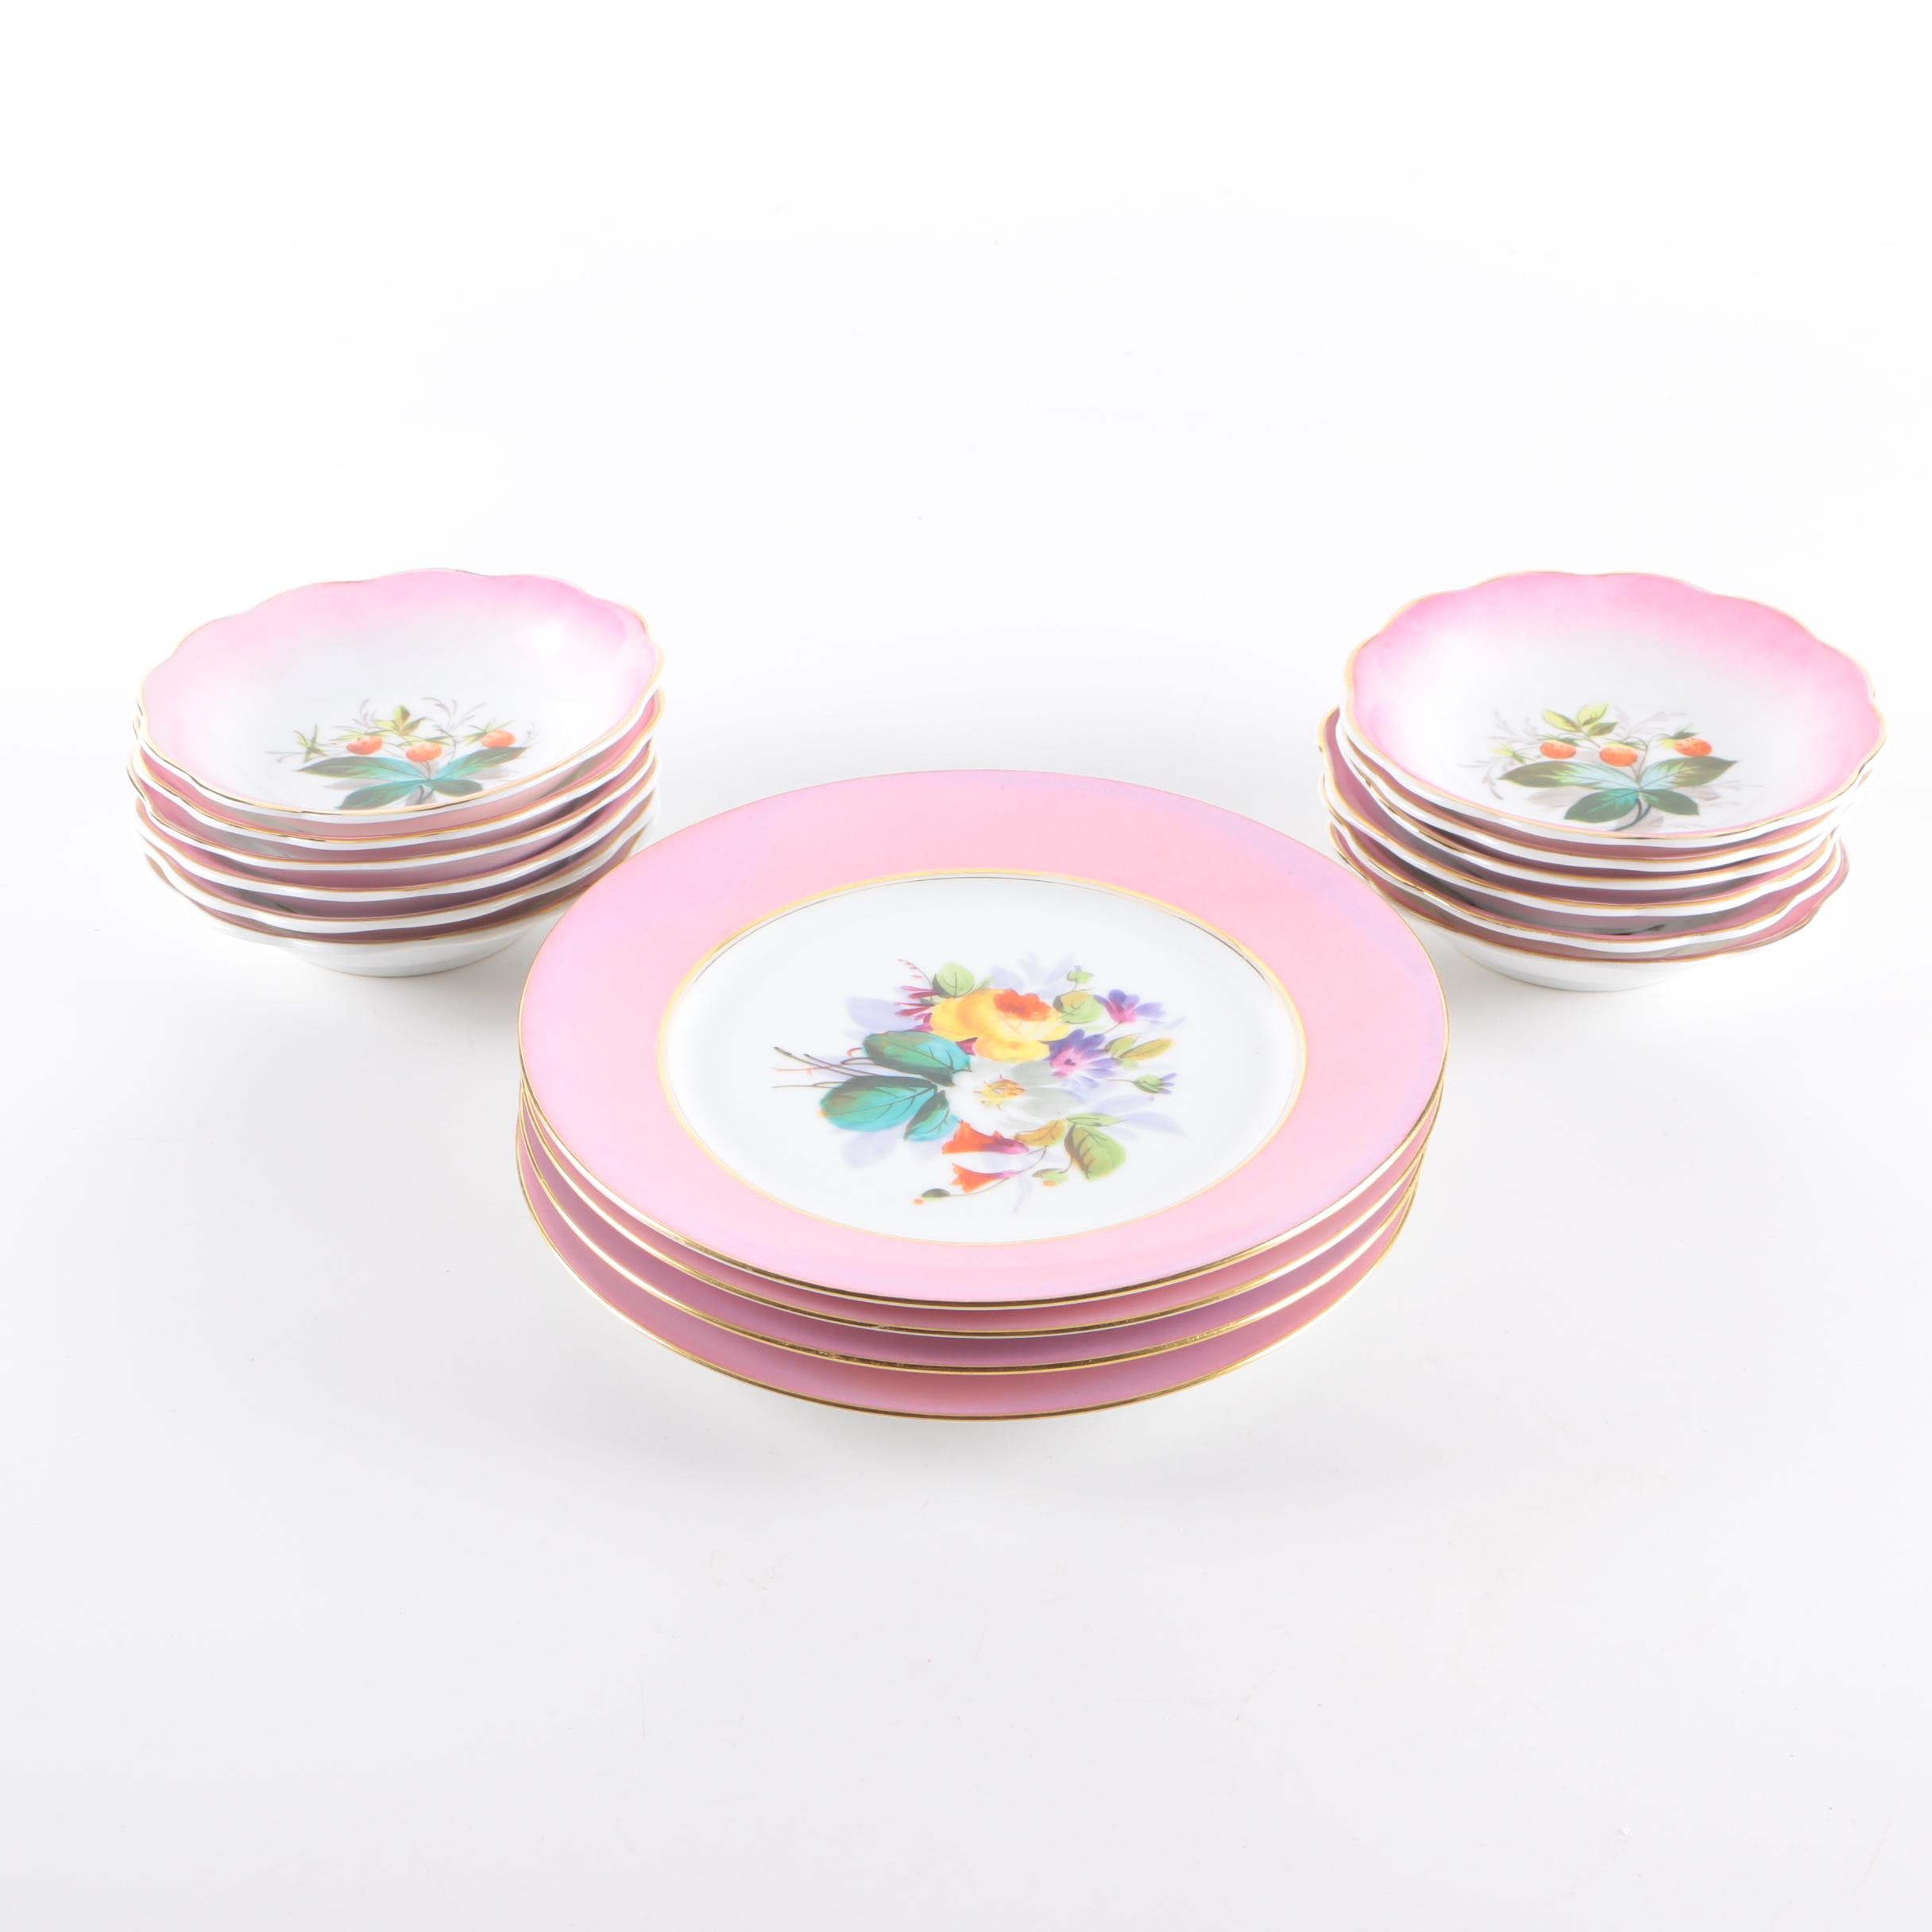 Floral Porcelain Tableware